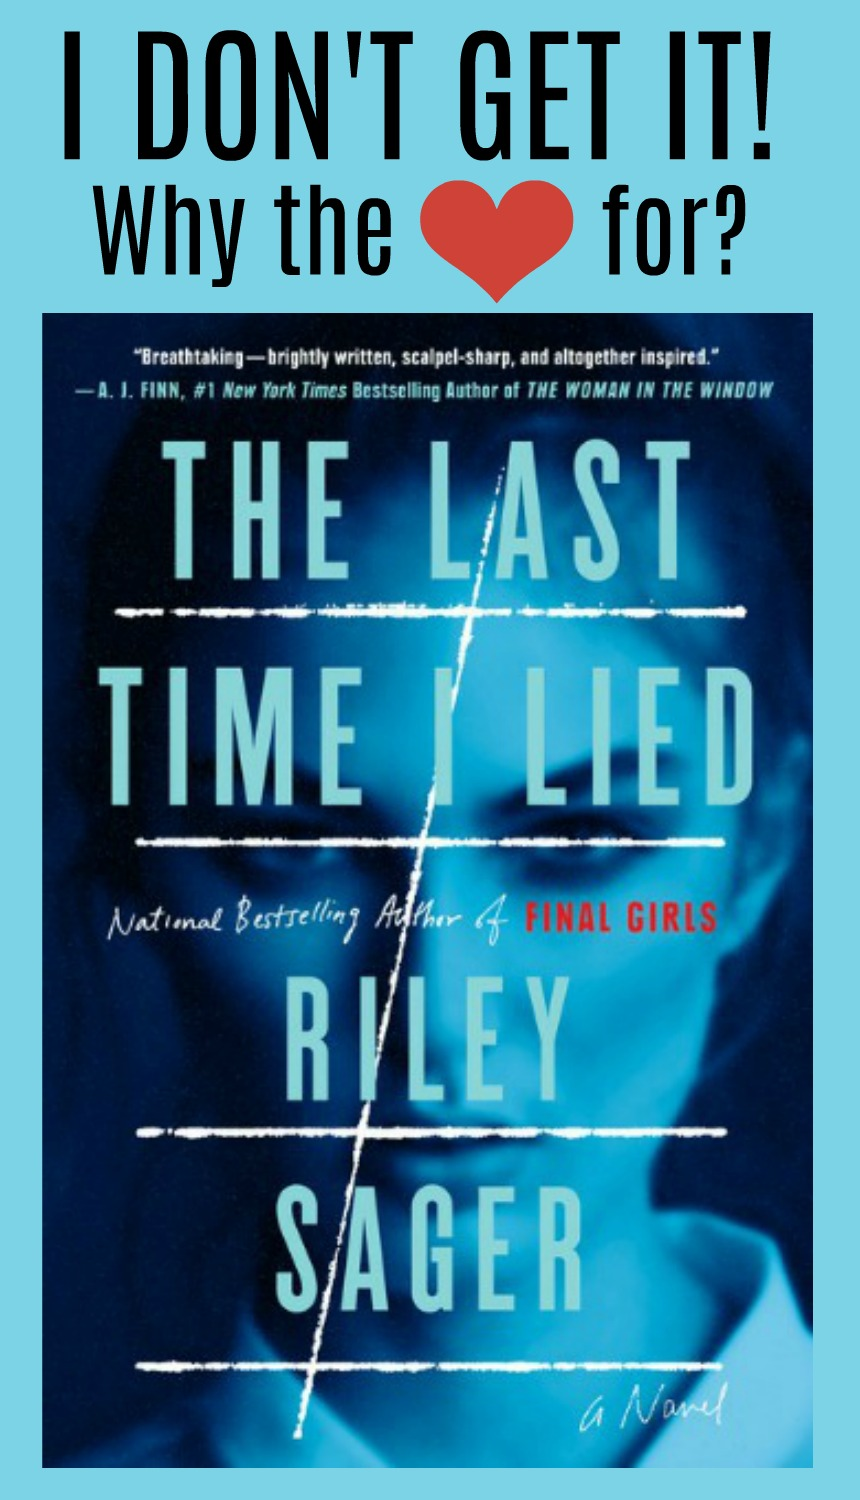 I Don't Get It! Why the Love for The Last Time I Lied?   Discussion - I must be missing something here because to me Sager's second book was a complete disaster. Let's talk.